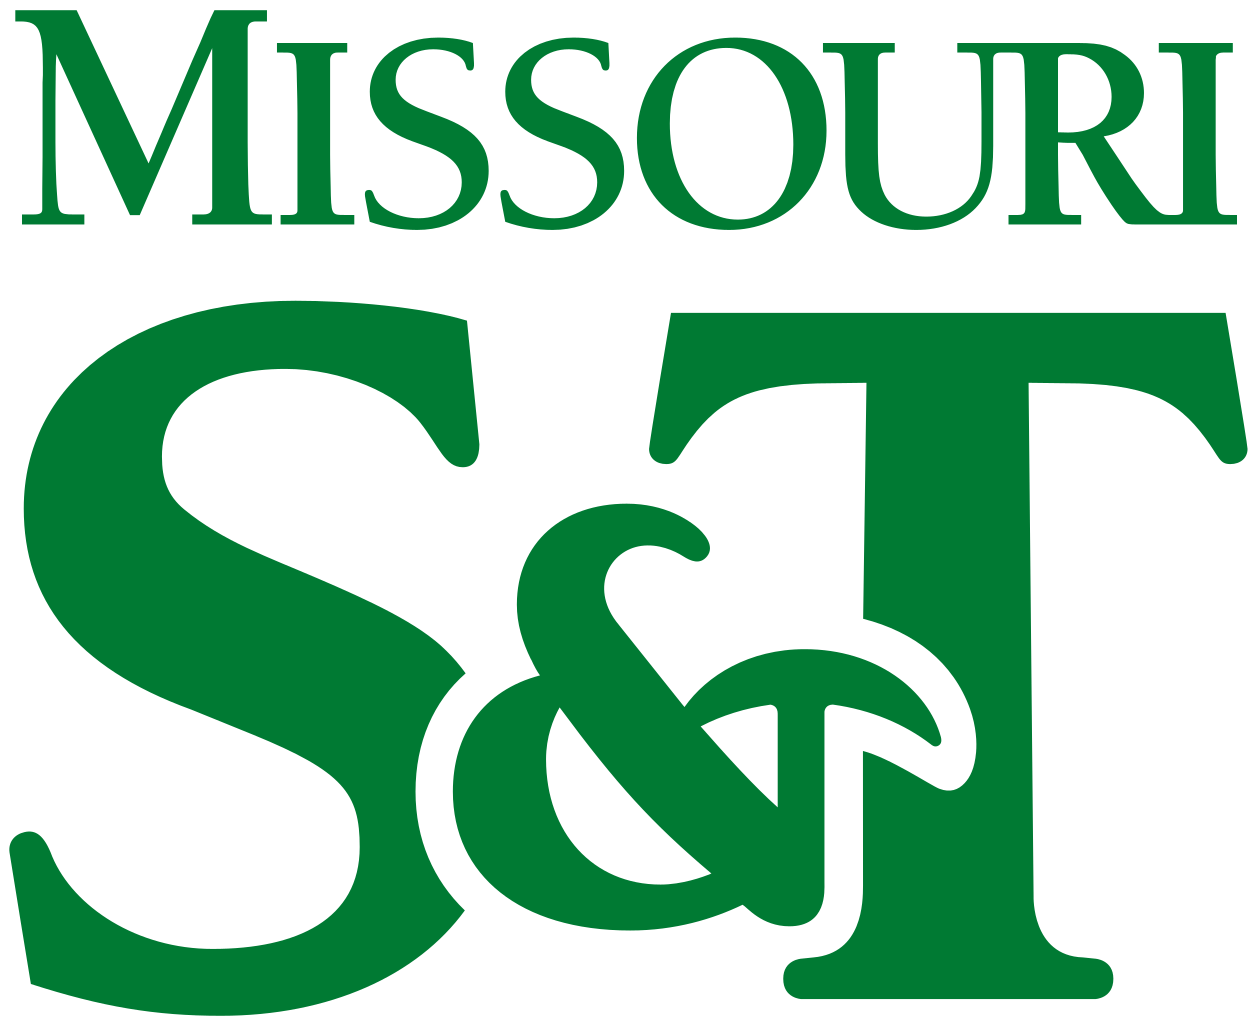 Missouri University of Science and Technology: SI SE PUEDE!